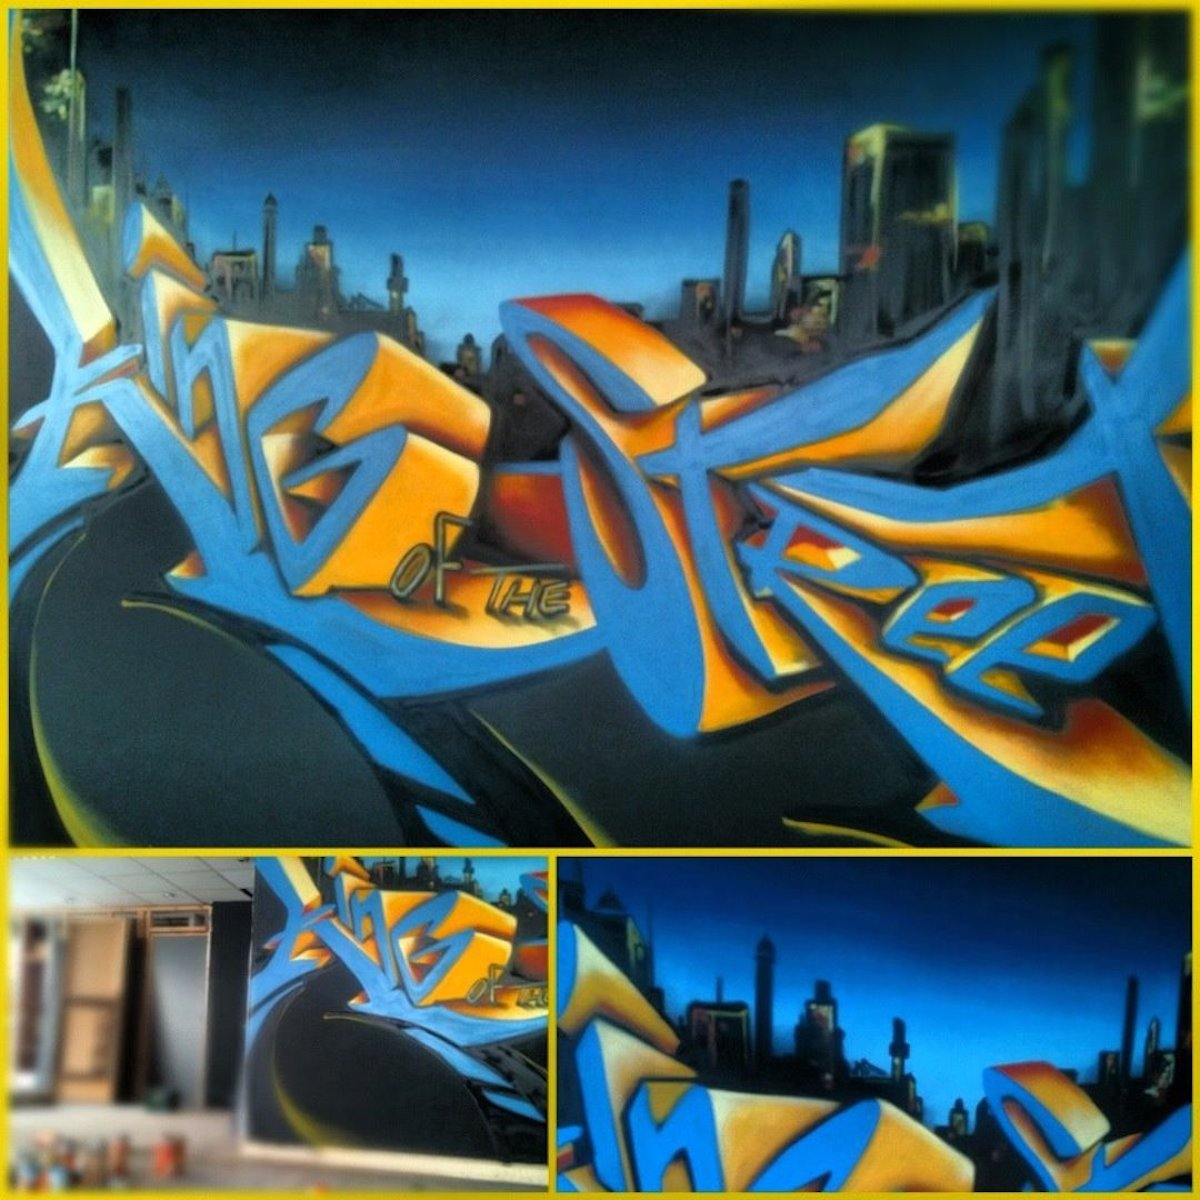 shops-graffiti-bristol-zase-zasedesign-0